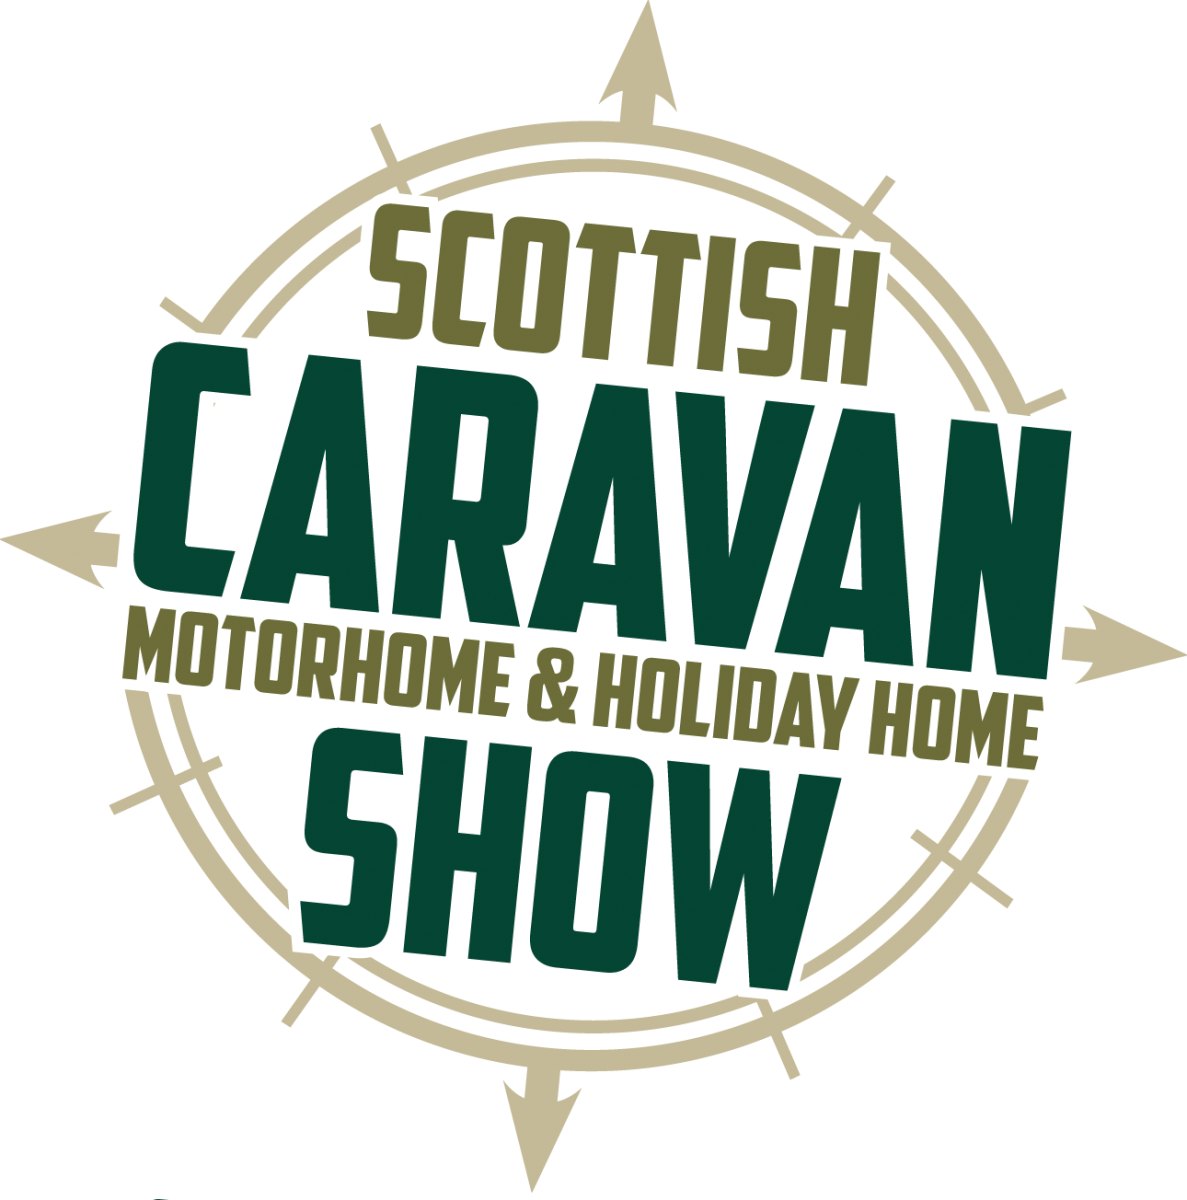 Scottish Caravan, Motorhome & Holiday Home Show 2018 Logo 2